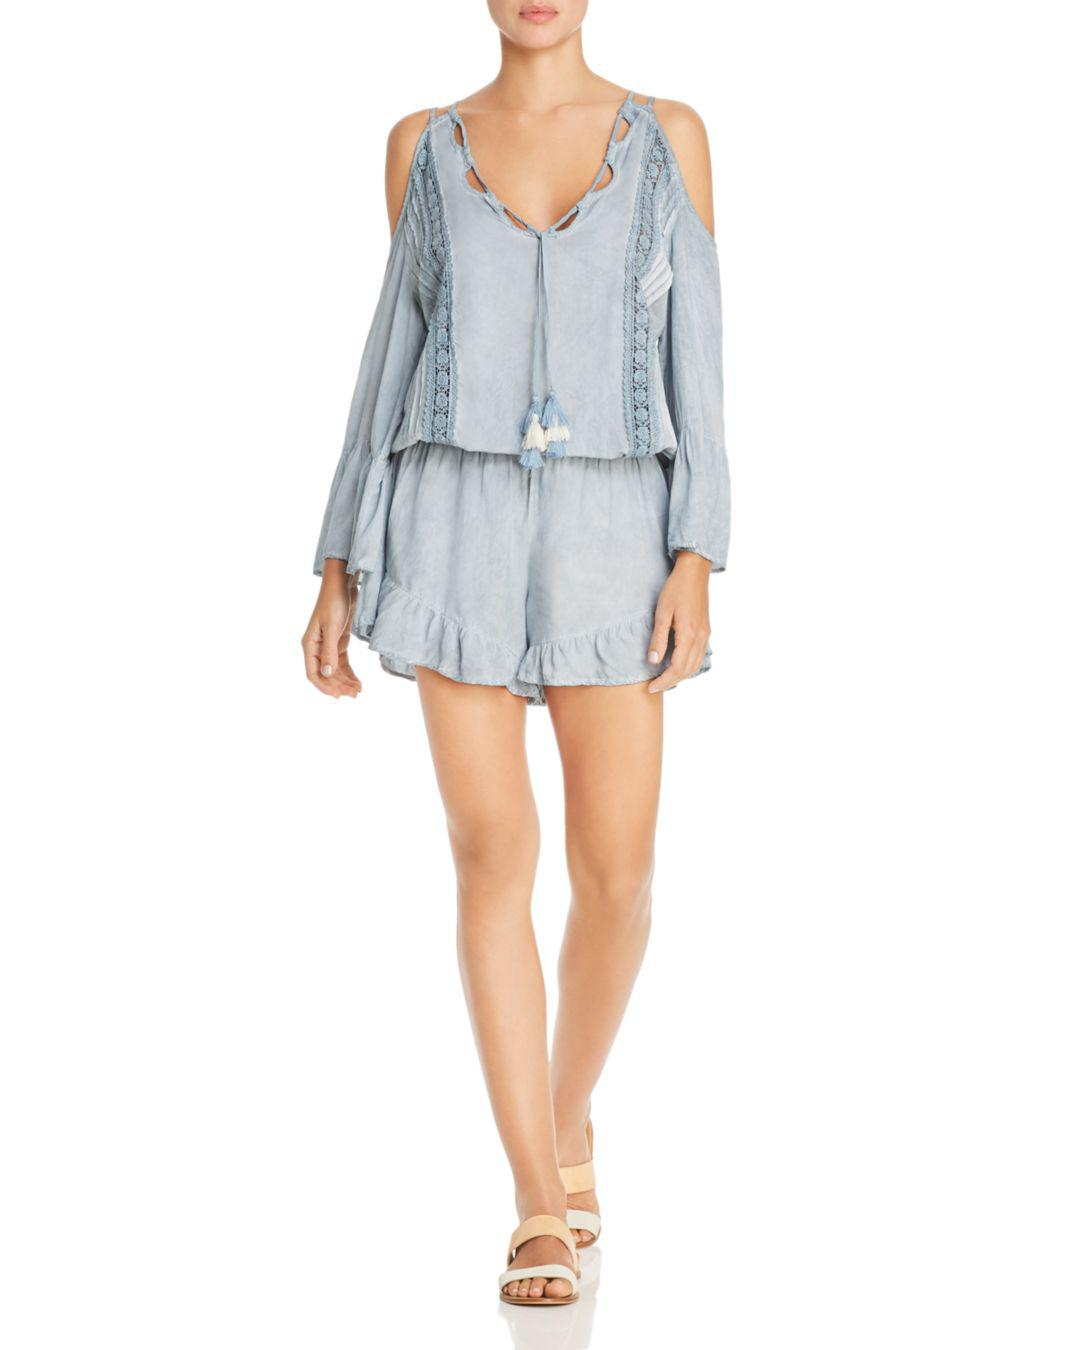 7189a9f6f8 Surf Gypsy. Women's Blue Washed Denim & Crochet Lace Pleated Romper Swim  Cover-up